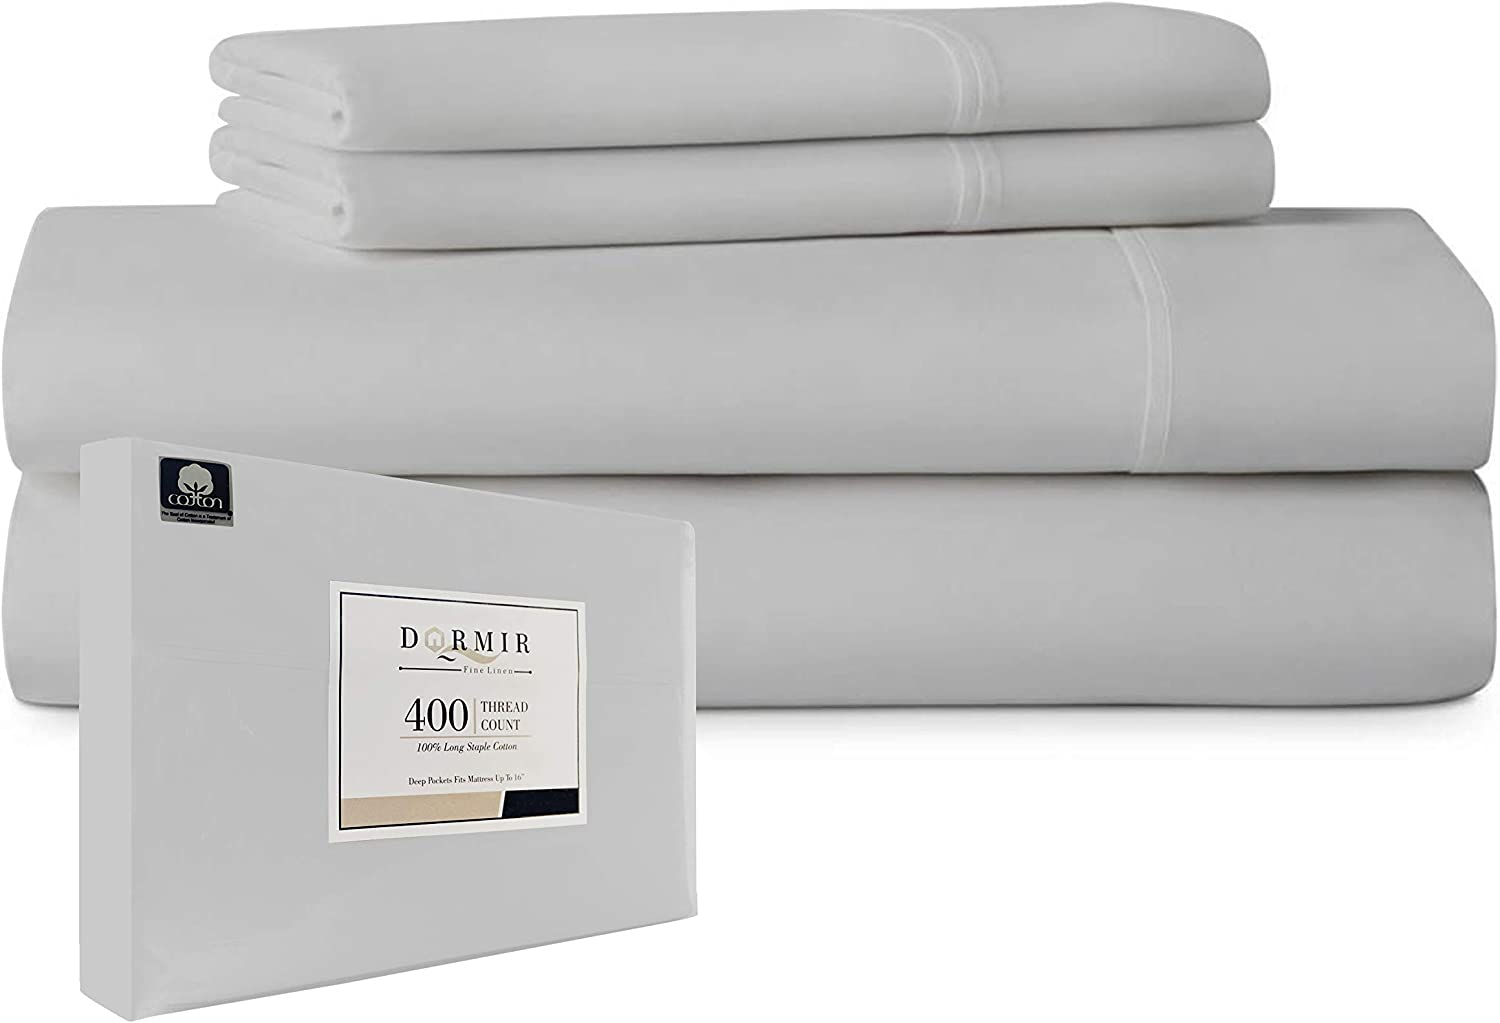 """Dormir California King Size Light Grey 4 Piece Sheets Set, 400 Thread Count 100% Combed Cotton Bed Sheets with Pillowcases, Long Staple Extra Soft Sateen Weave 16"""" Deep Pocket Easy Fit Bedding Set : Home & Kitchen"""